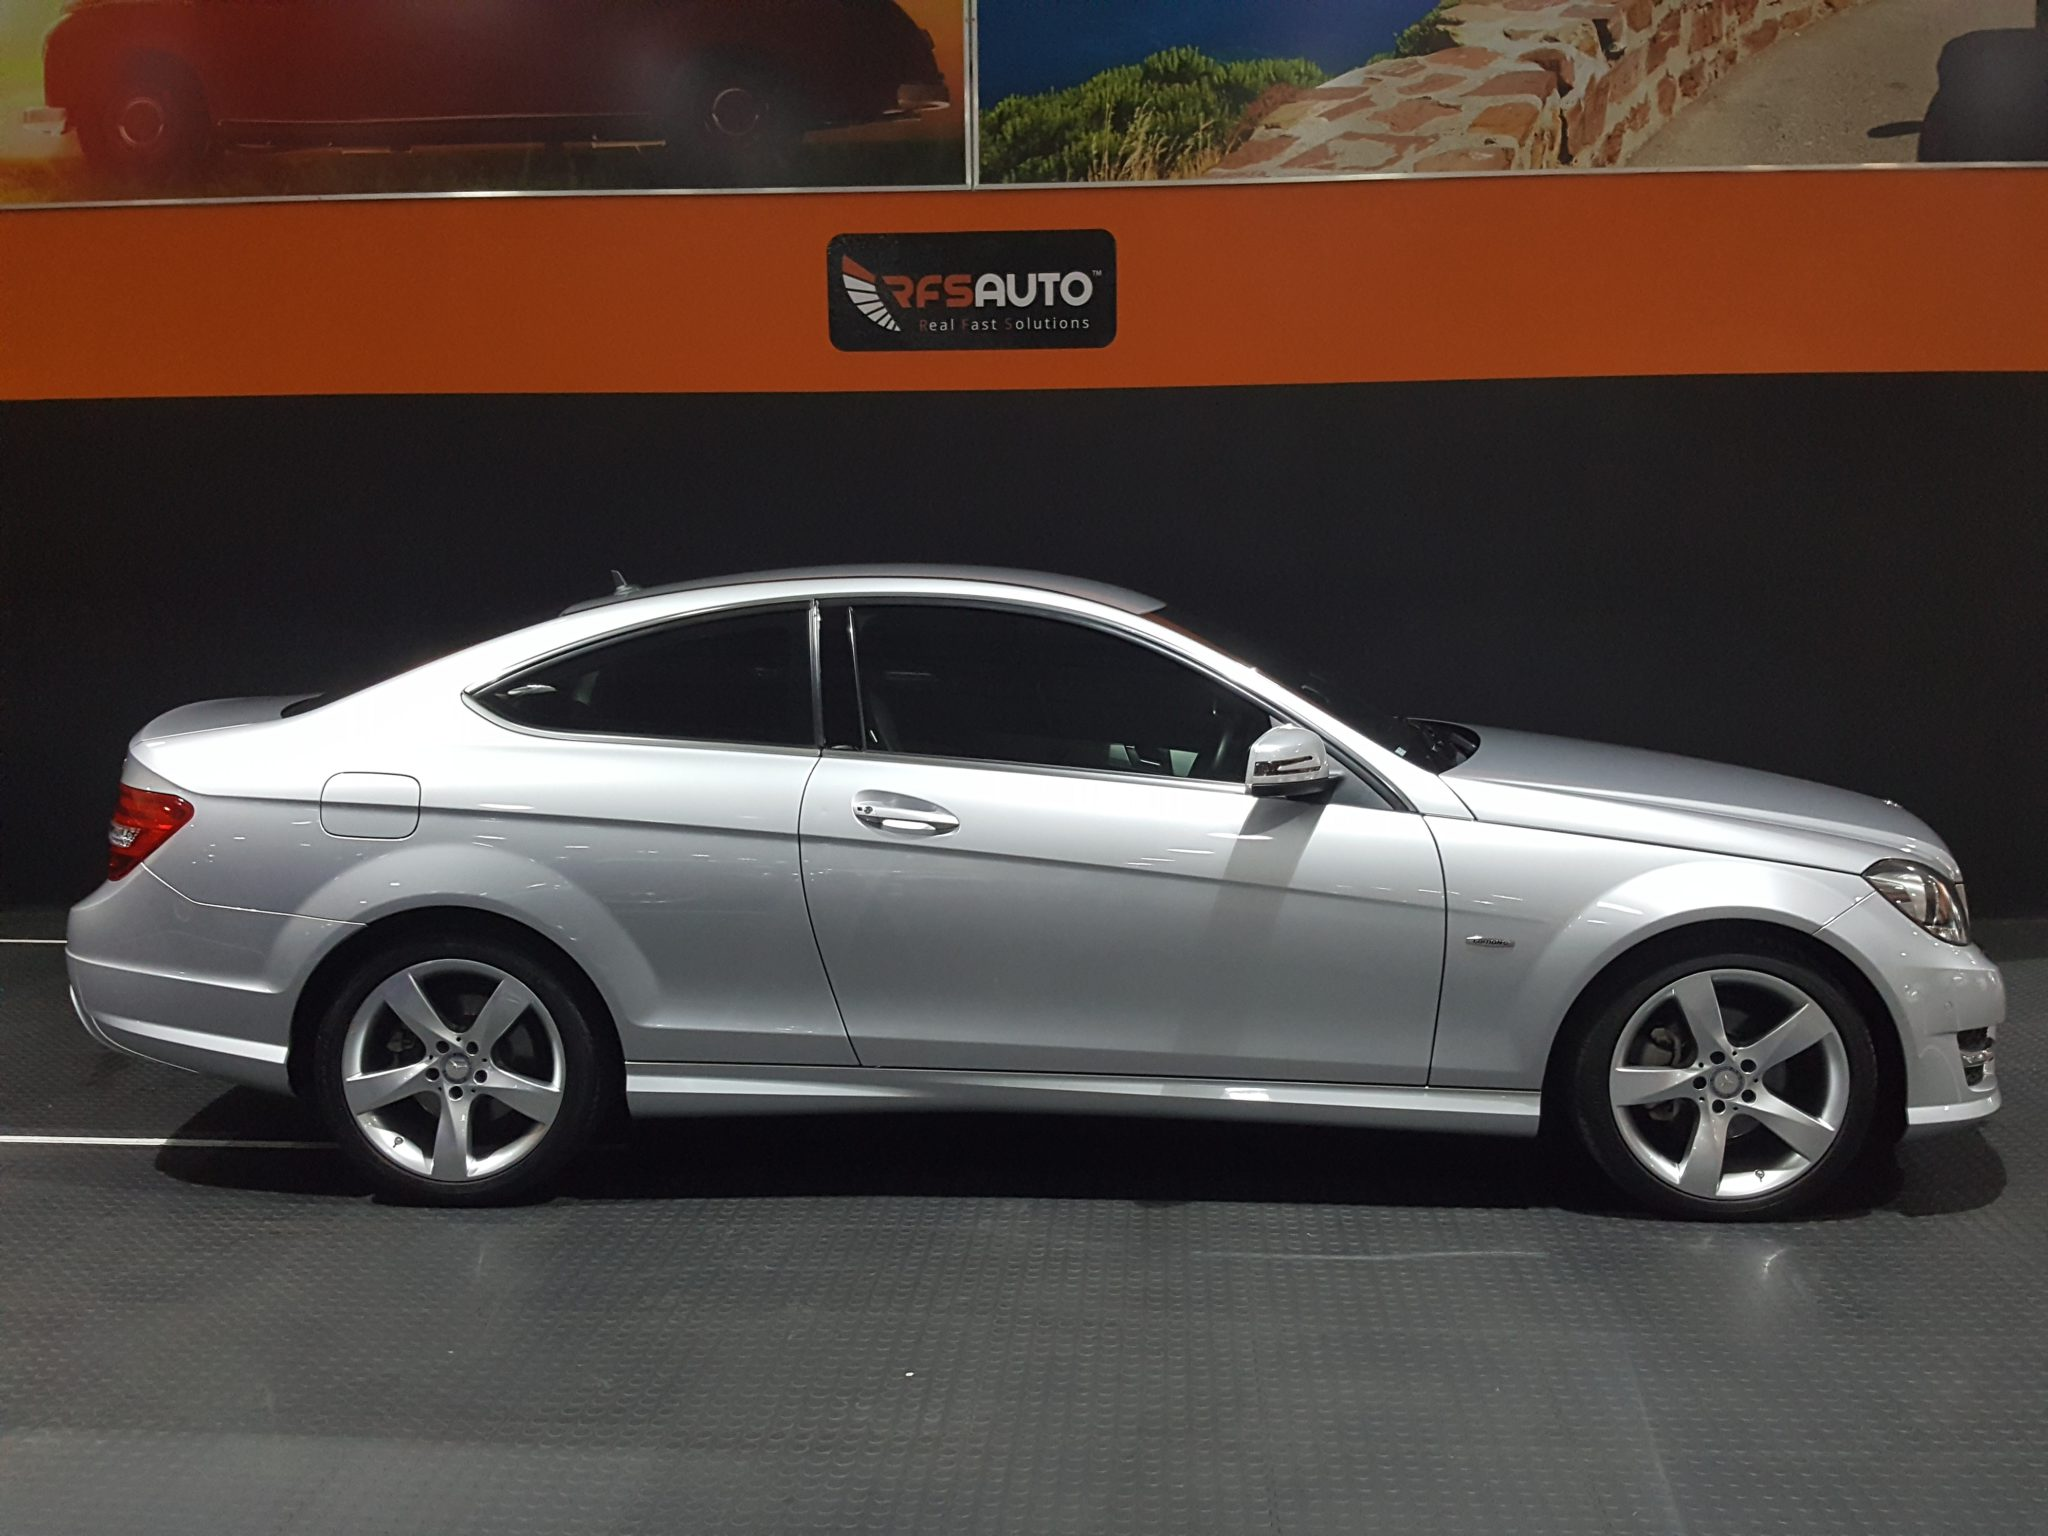 2013 mercedes benz c250 cdi edition c coupe. Cars Review. Best American Auto & Cars Review